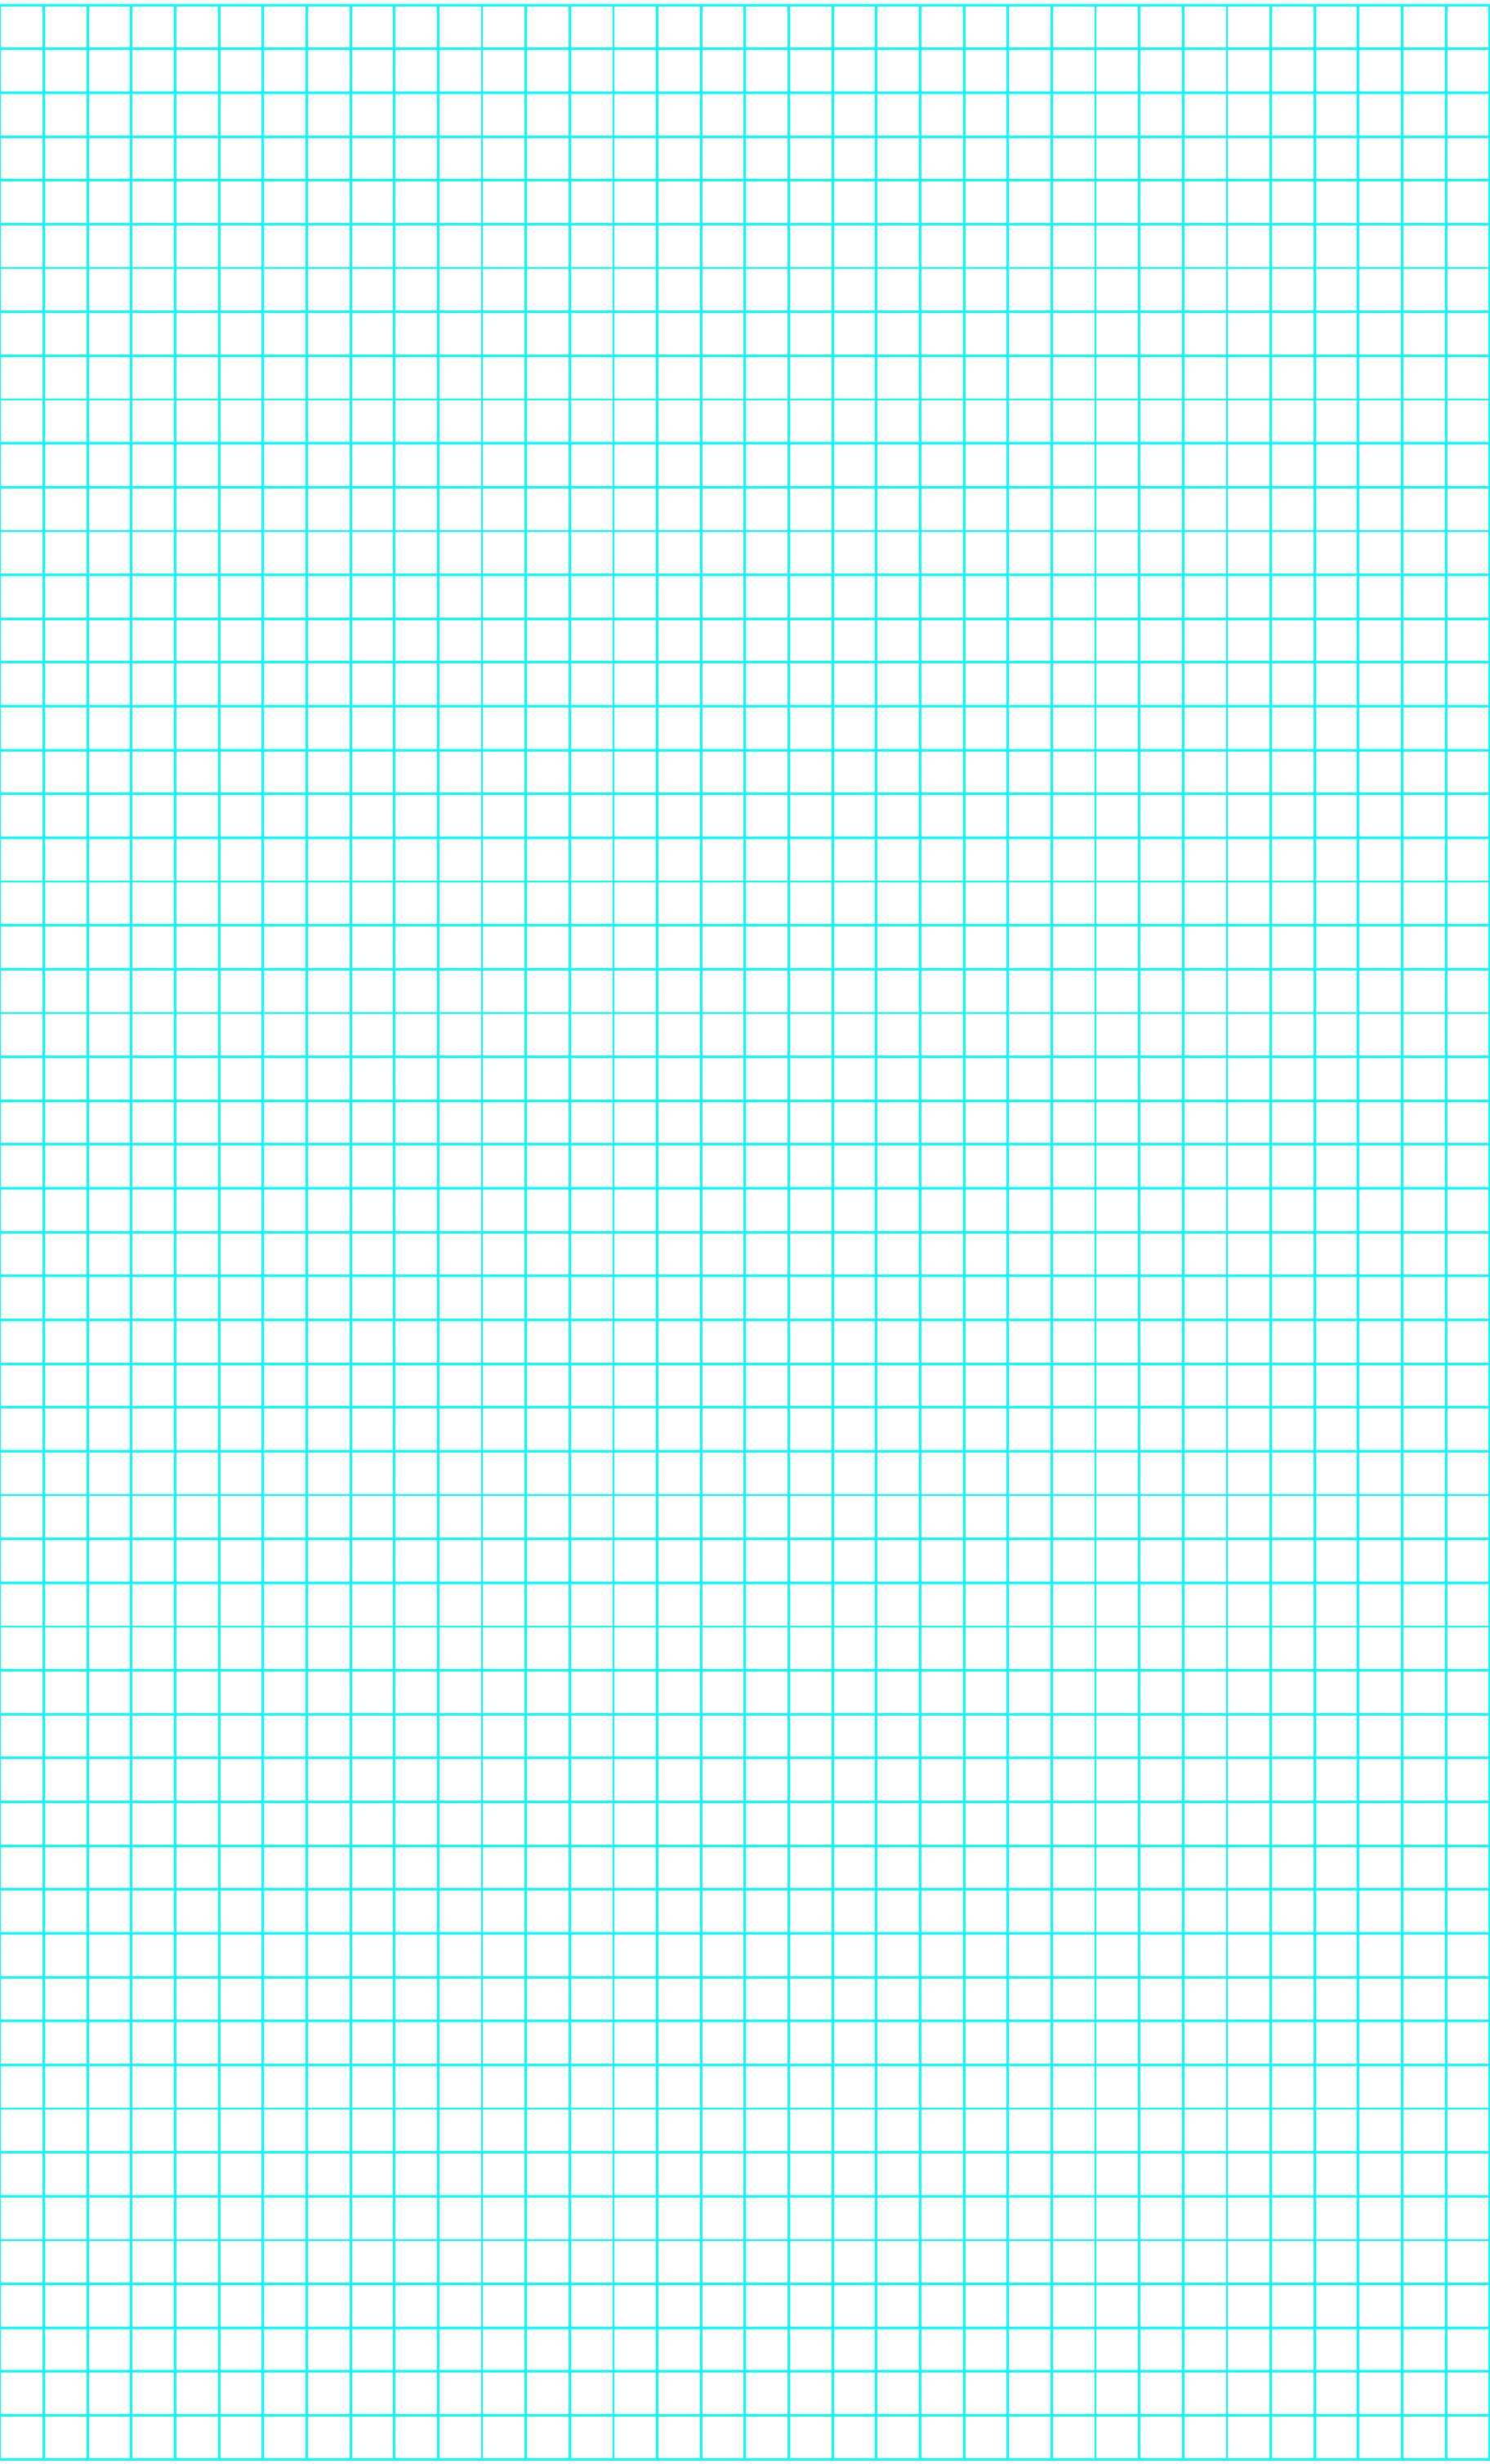 4 Lines per Inch Graph Paper on Legal-Sized Paper Free ...